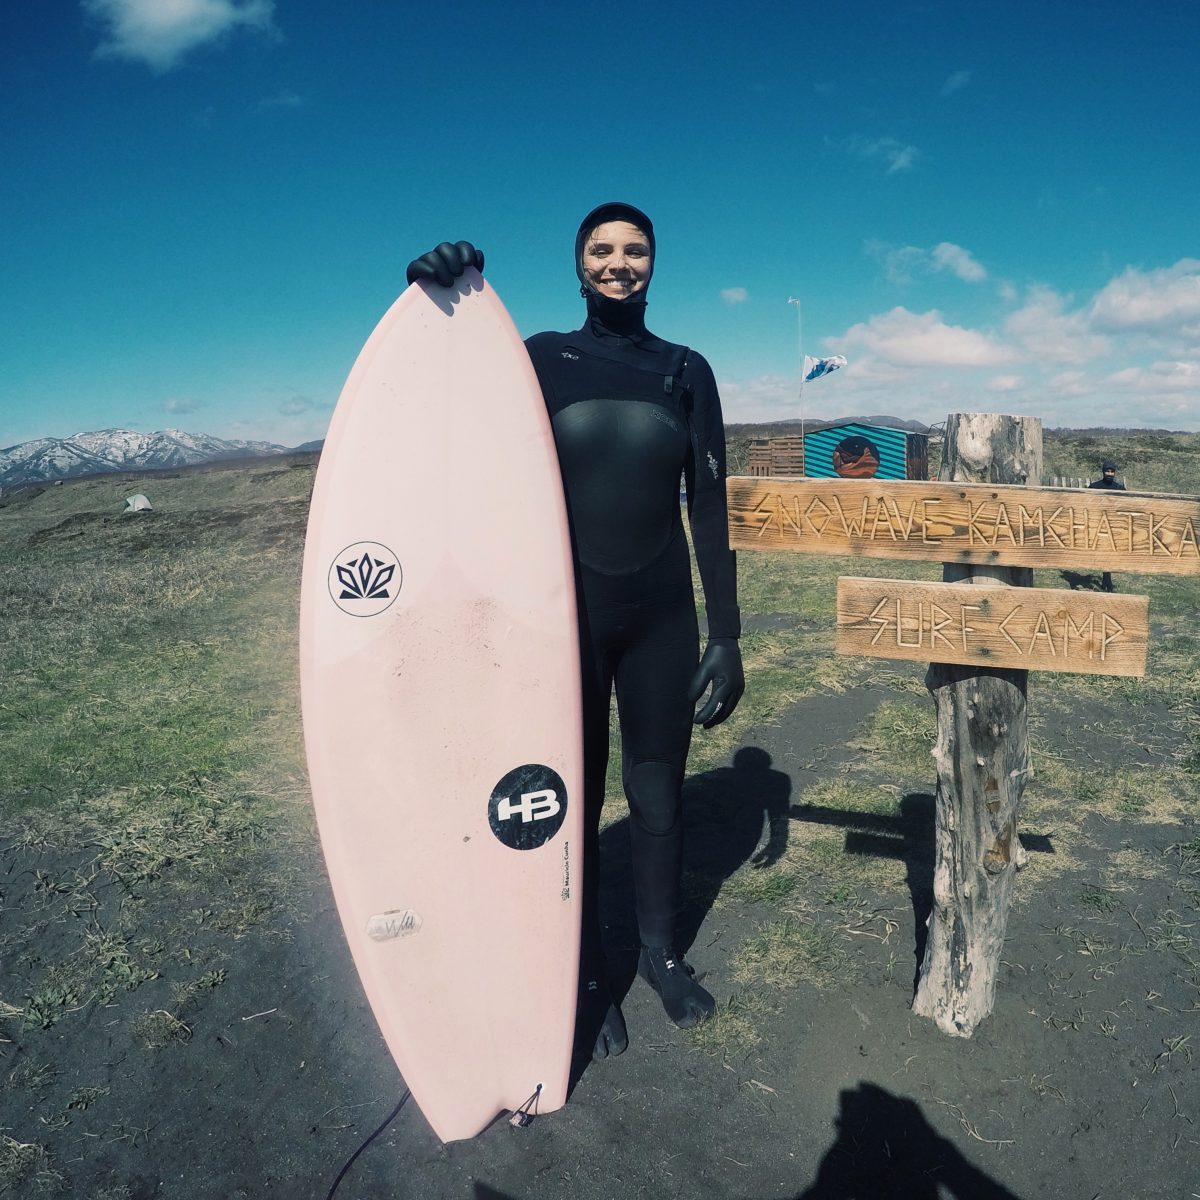 All smiles after our first surf session in Kamchatka, Russia - Photo: Stephan Figueiredo